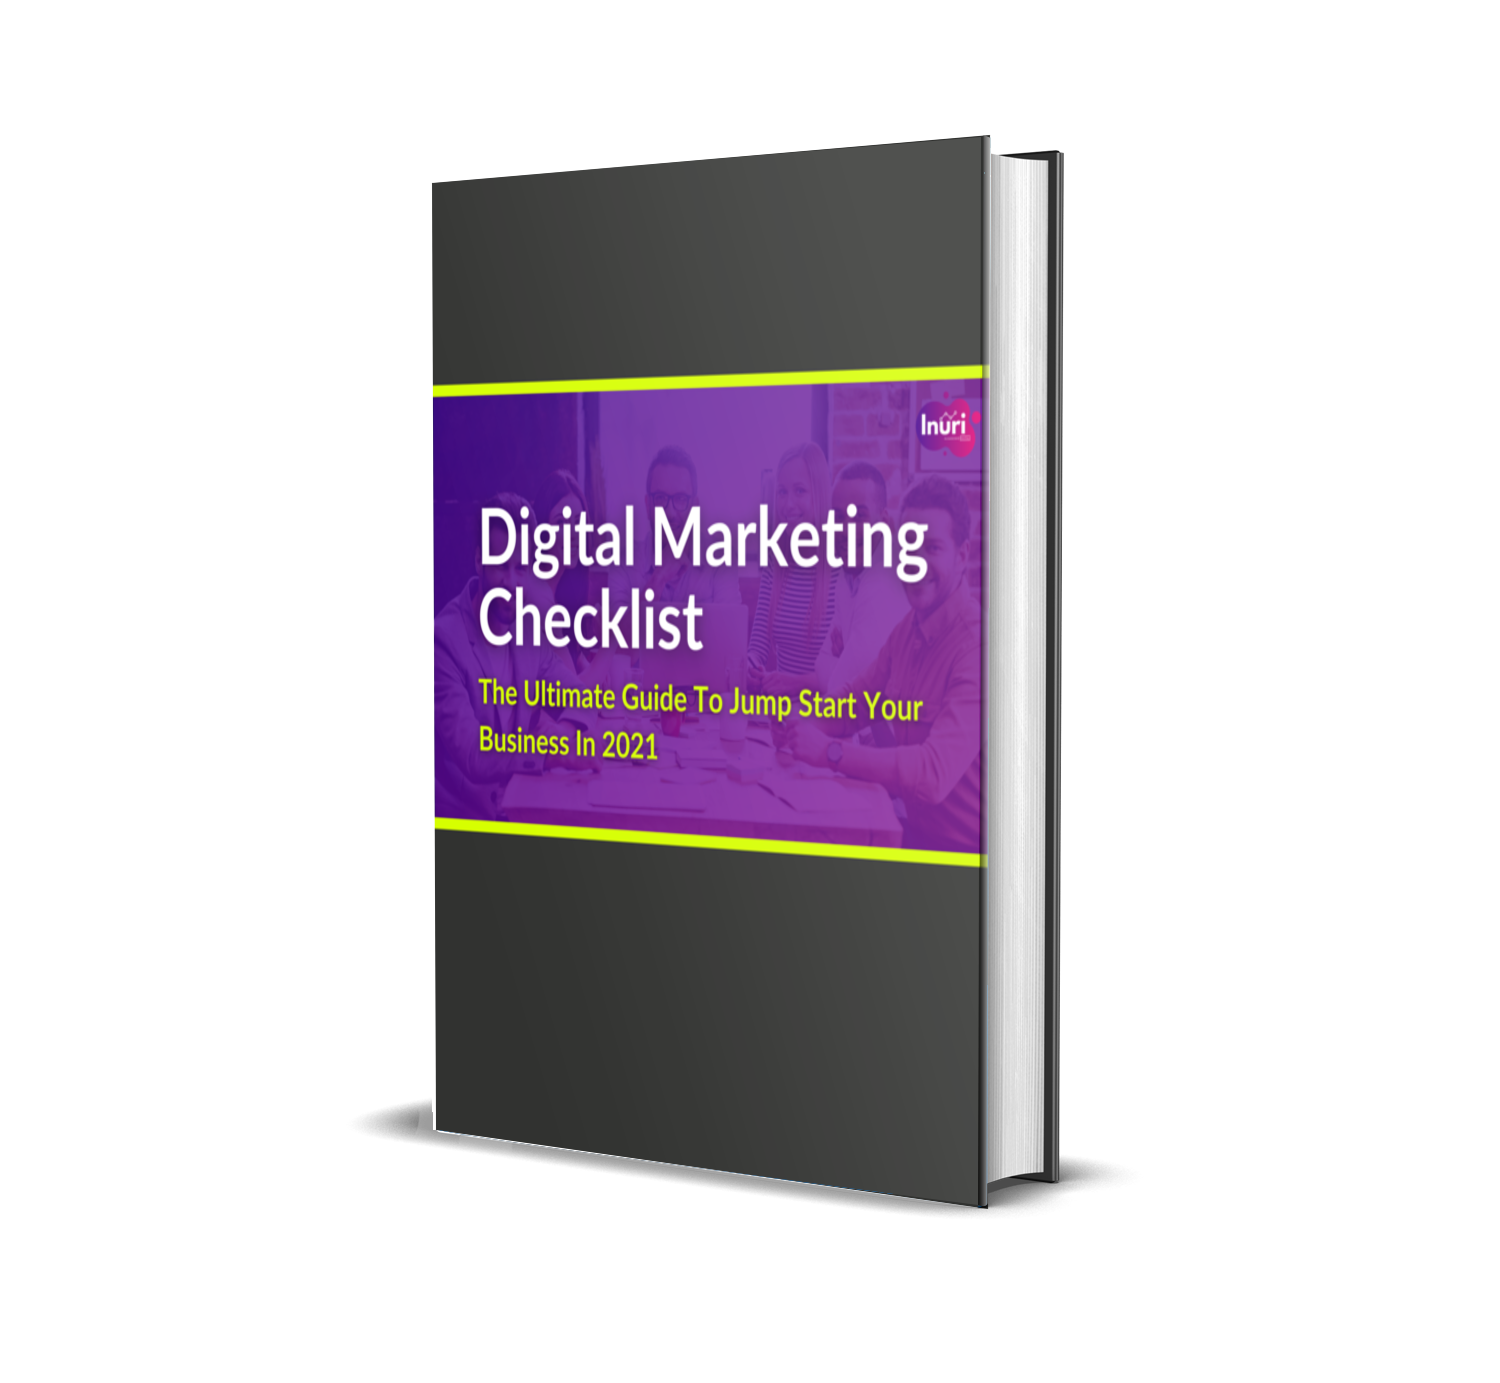 2021 Digital Marketing Checklist By Inuri